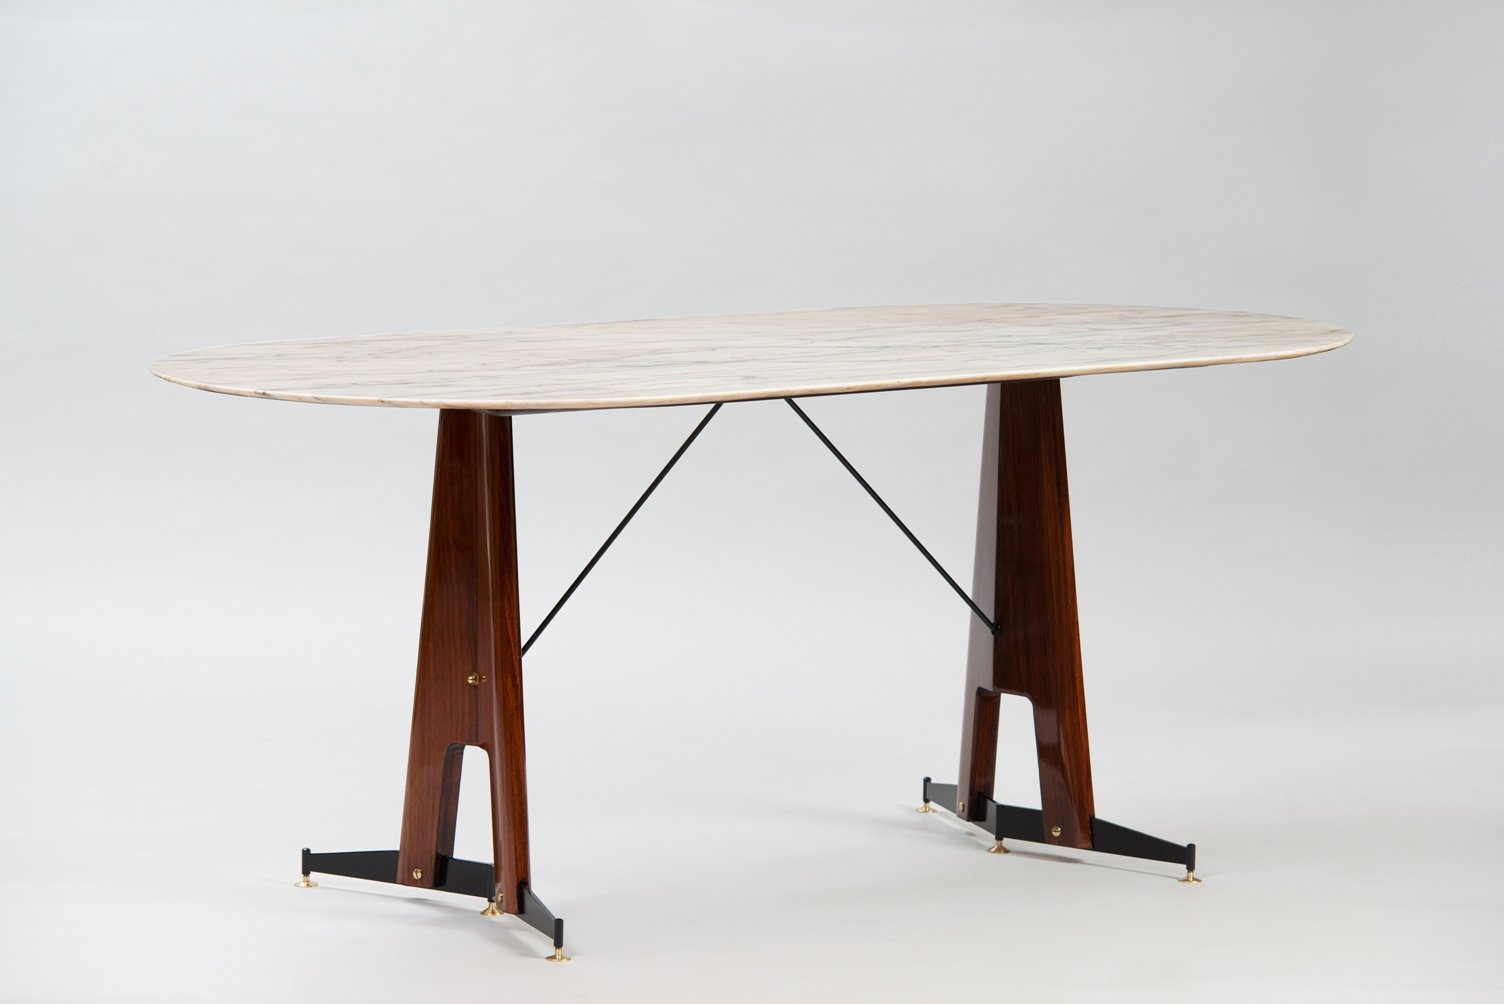 Table salle a manger marbre design for Table salle a manger jimi